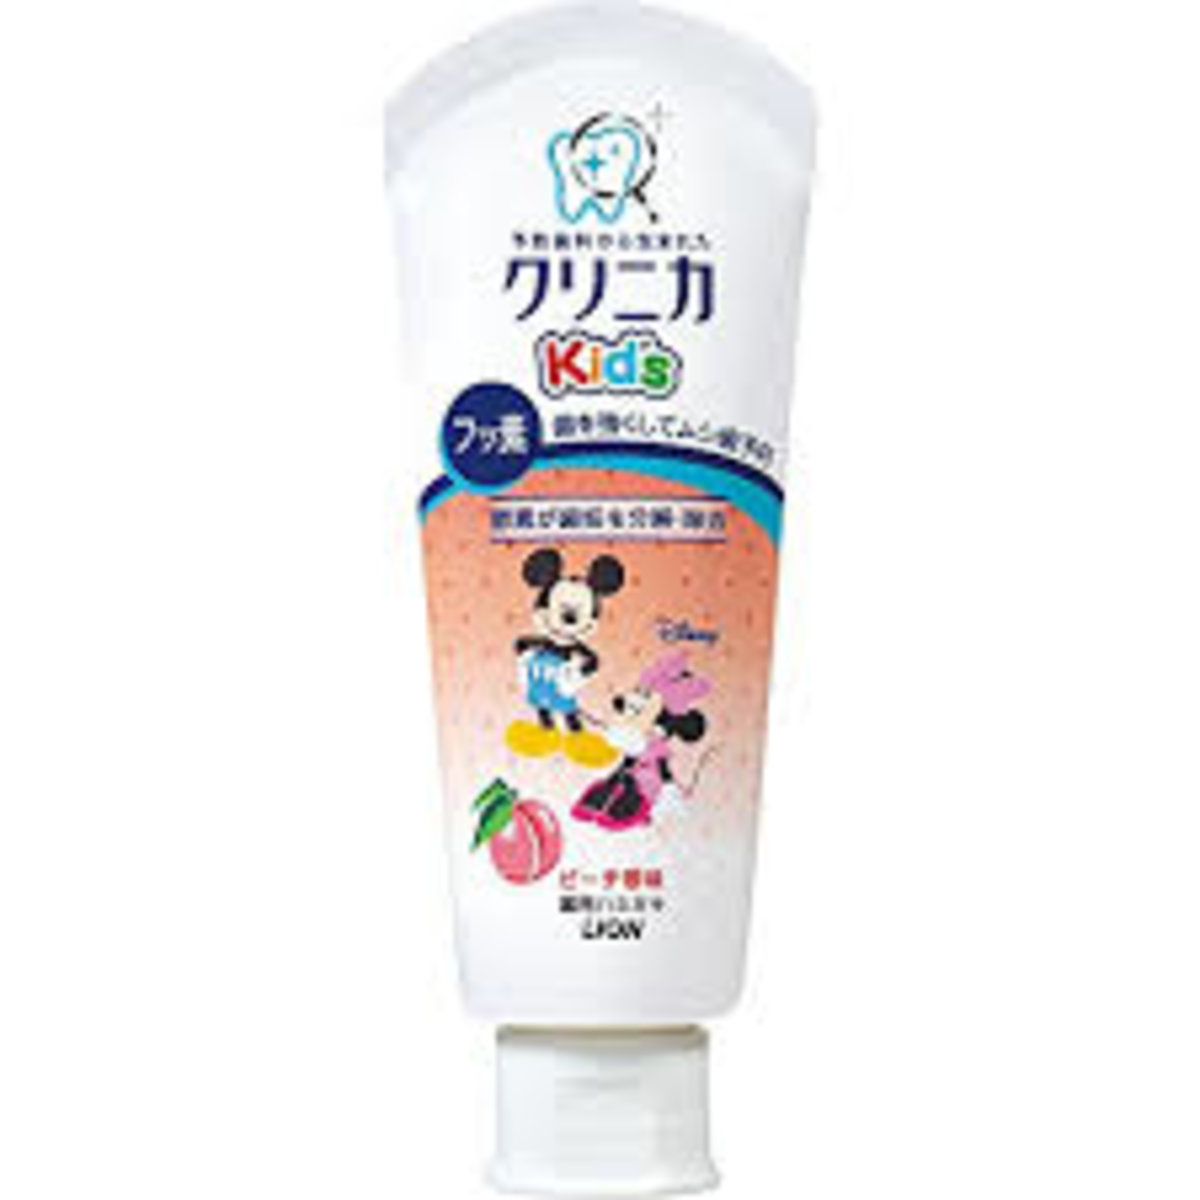 Japan Lion Clinica Kid's toothpaste fresh peach flavor (Parallel import)